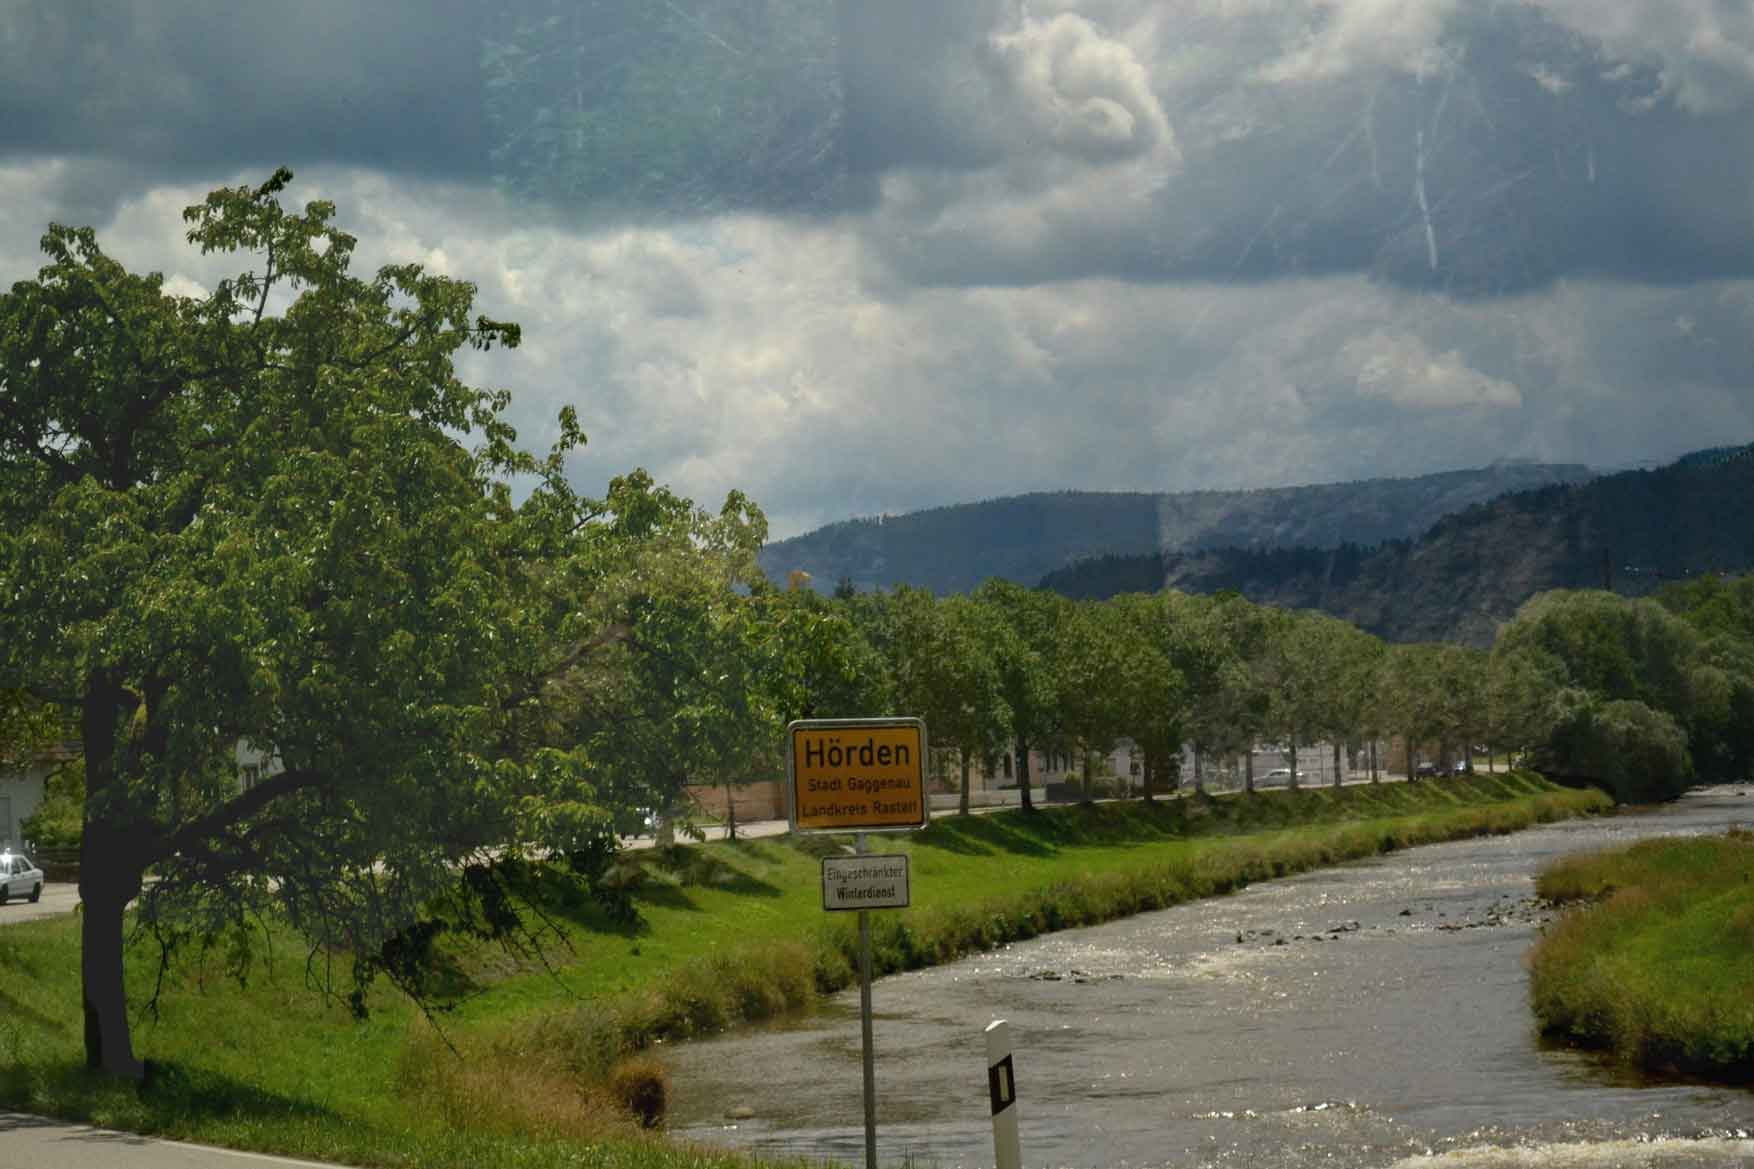 A river flows along the train ride, Germany by train. Image©gunjanvirk